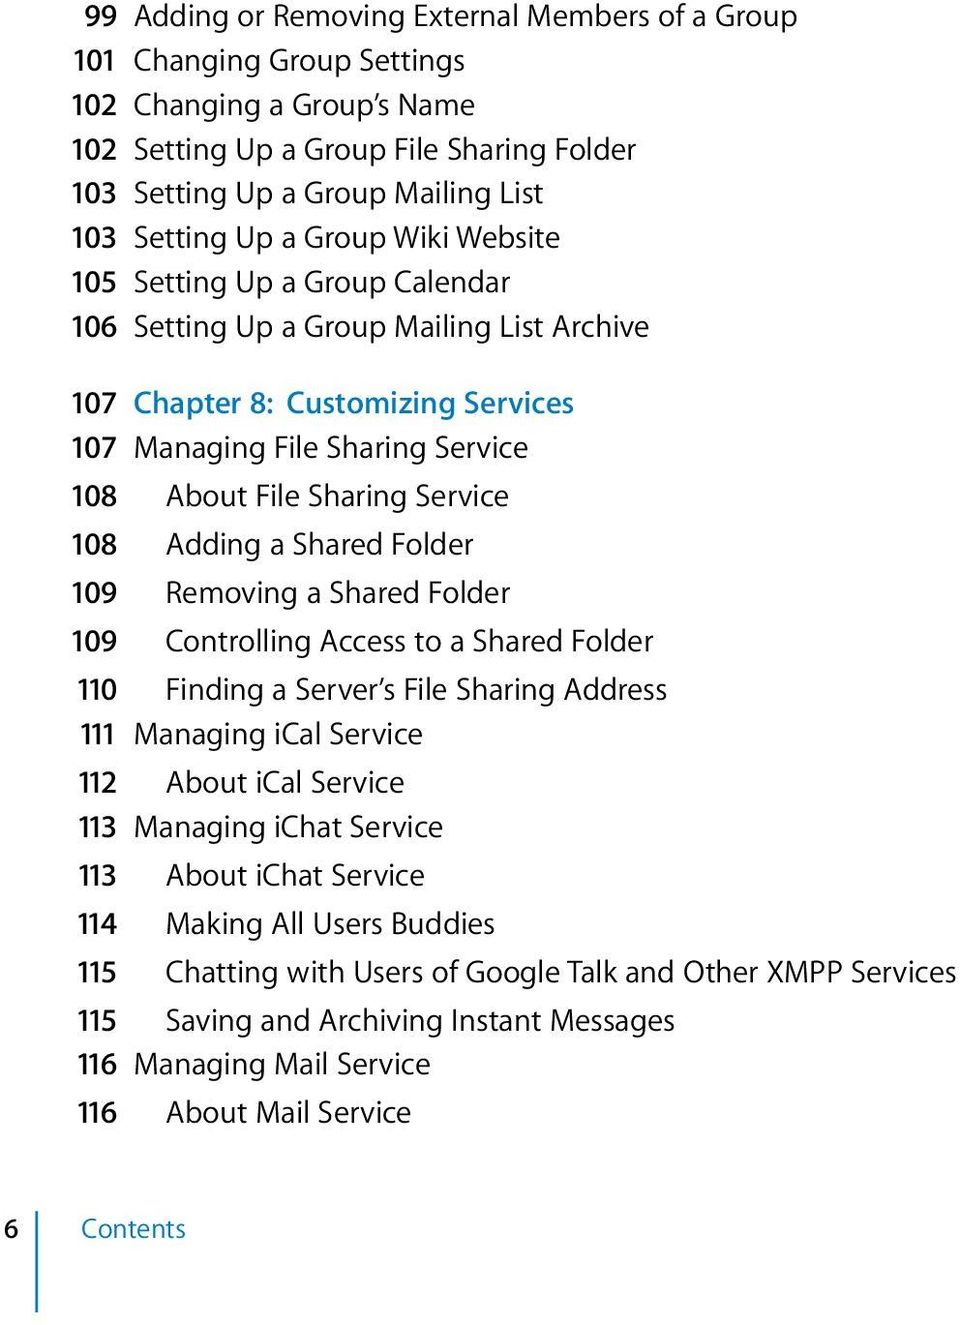 108 Adding a Shared Folder 109 Removing a Shared Folder 109 Controlling Access to a Shared Folder 110 Finding a Server s File Sharing Address 111 Managing ical Service 112 About ical Service 113